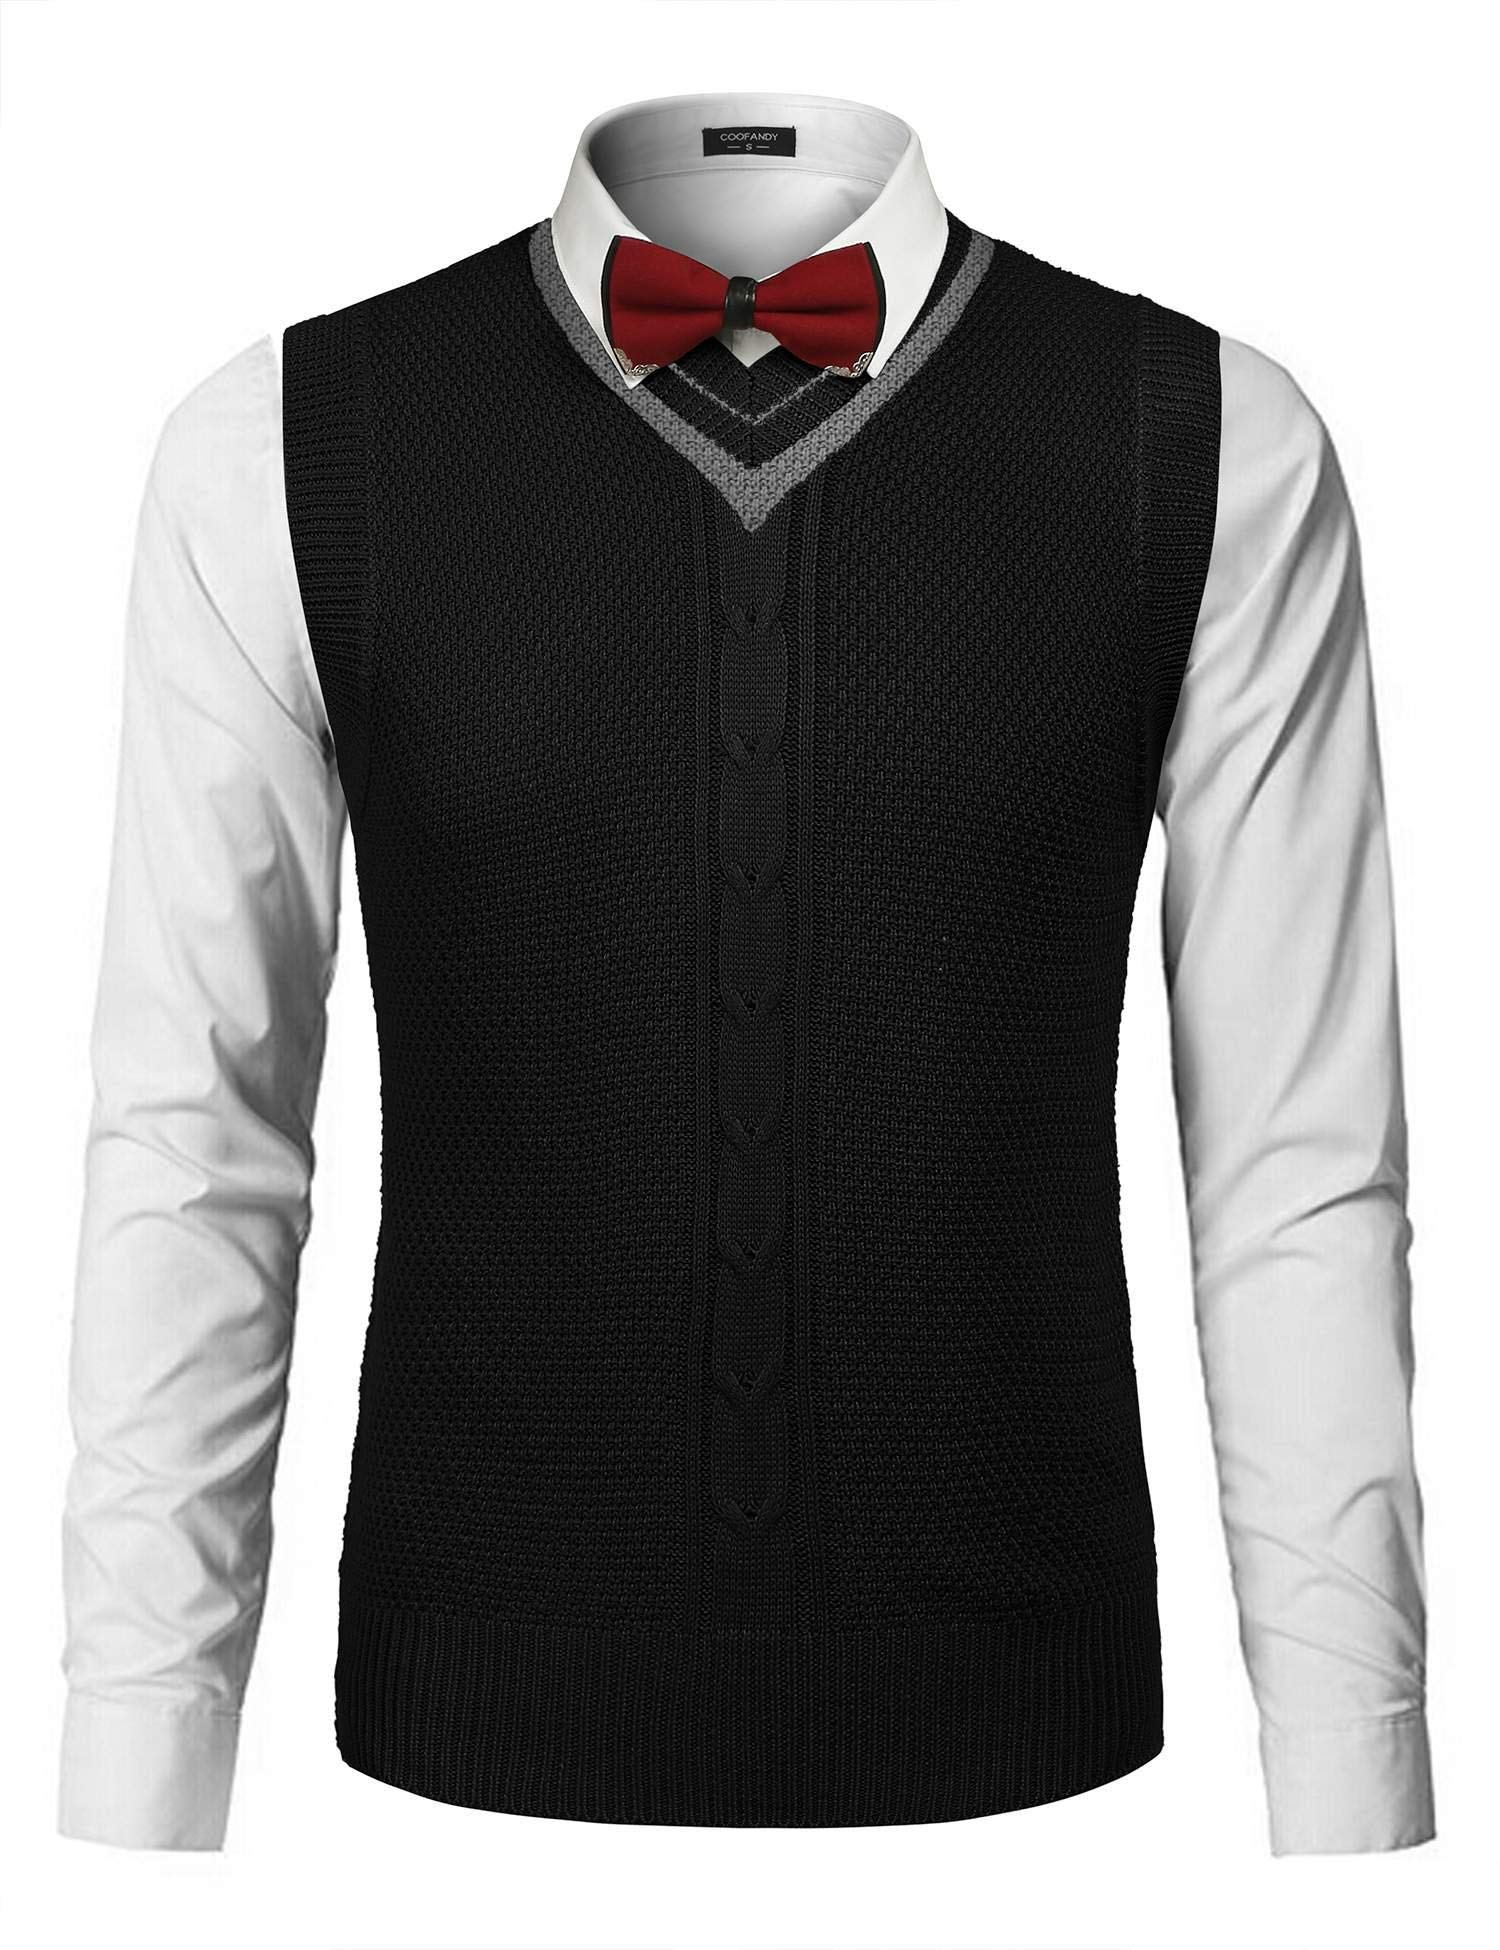 COOFANDY Men's Casual Knit Cotton Pullover Sleeveless Sweater Waistcoat Vest,Black,X-Large